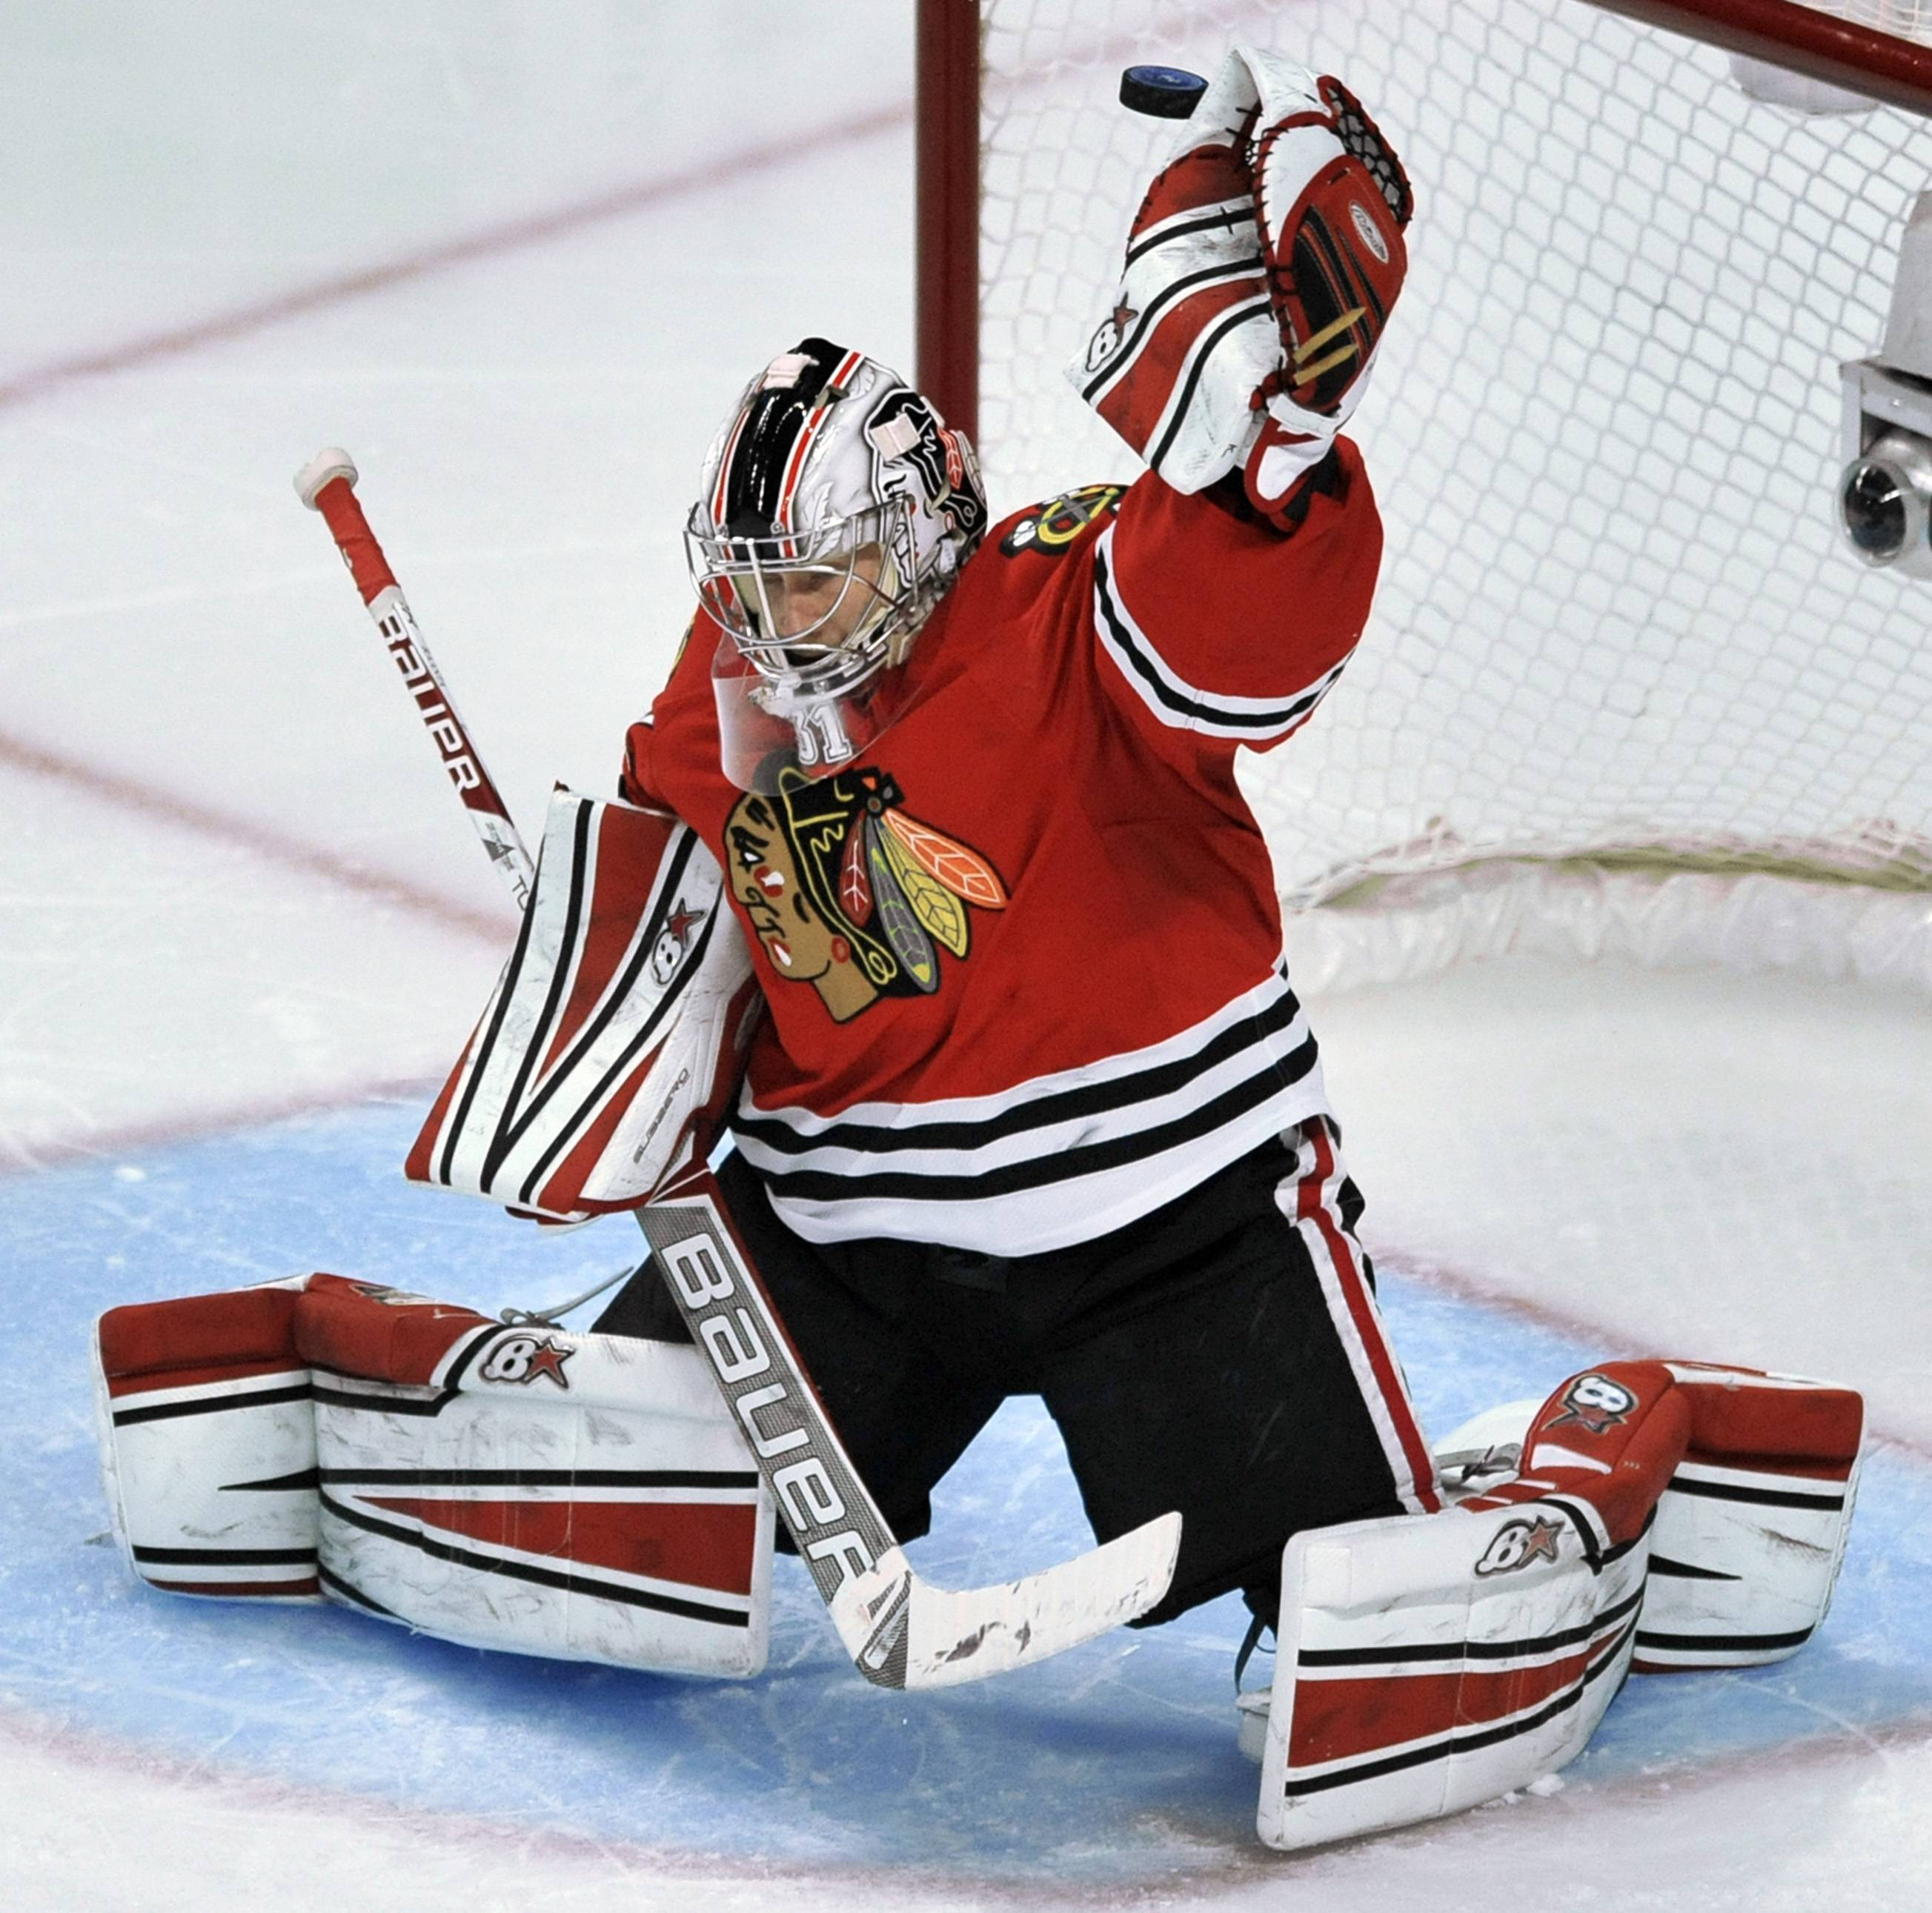 Blackhawks goalie Antti Raanta makes a save during the third period Sunday night, when he stopped 31 shots against the Maple Leafs for his second shutout of the season.